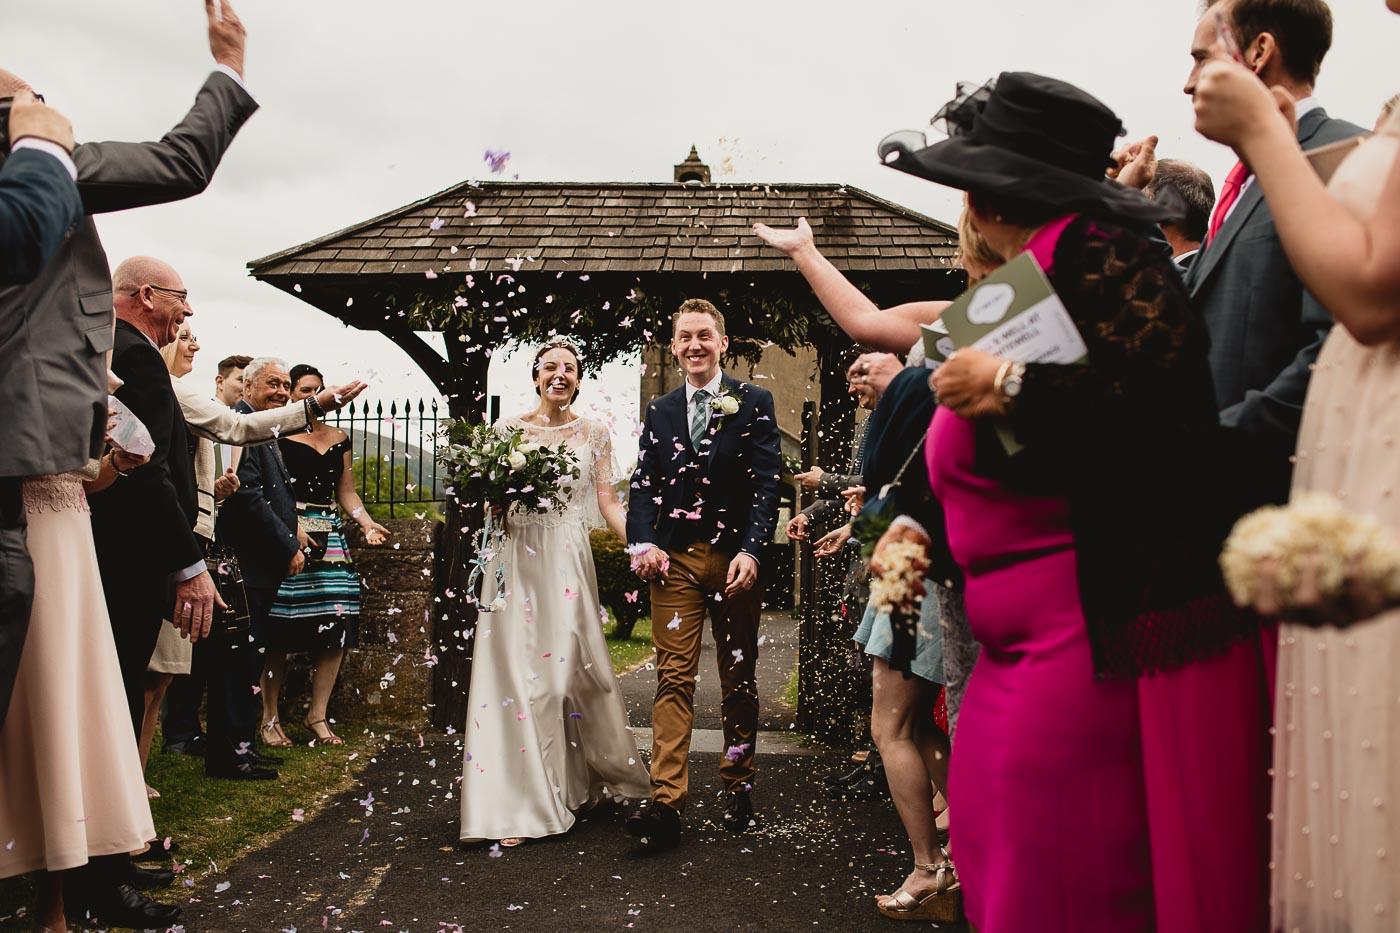 Confetti thrown as couple walk out of church grounds, Wedding confetti shot